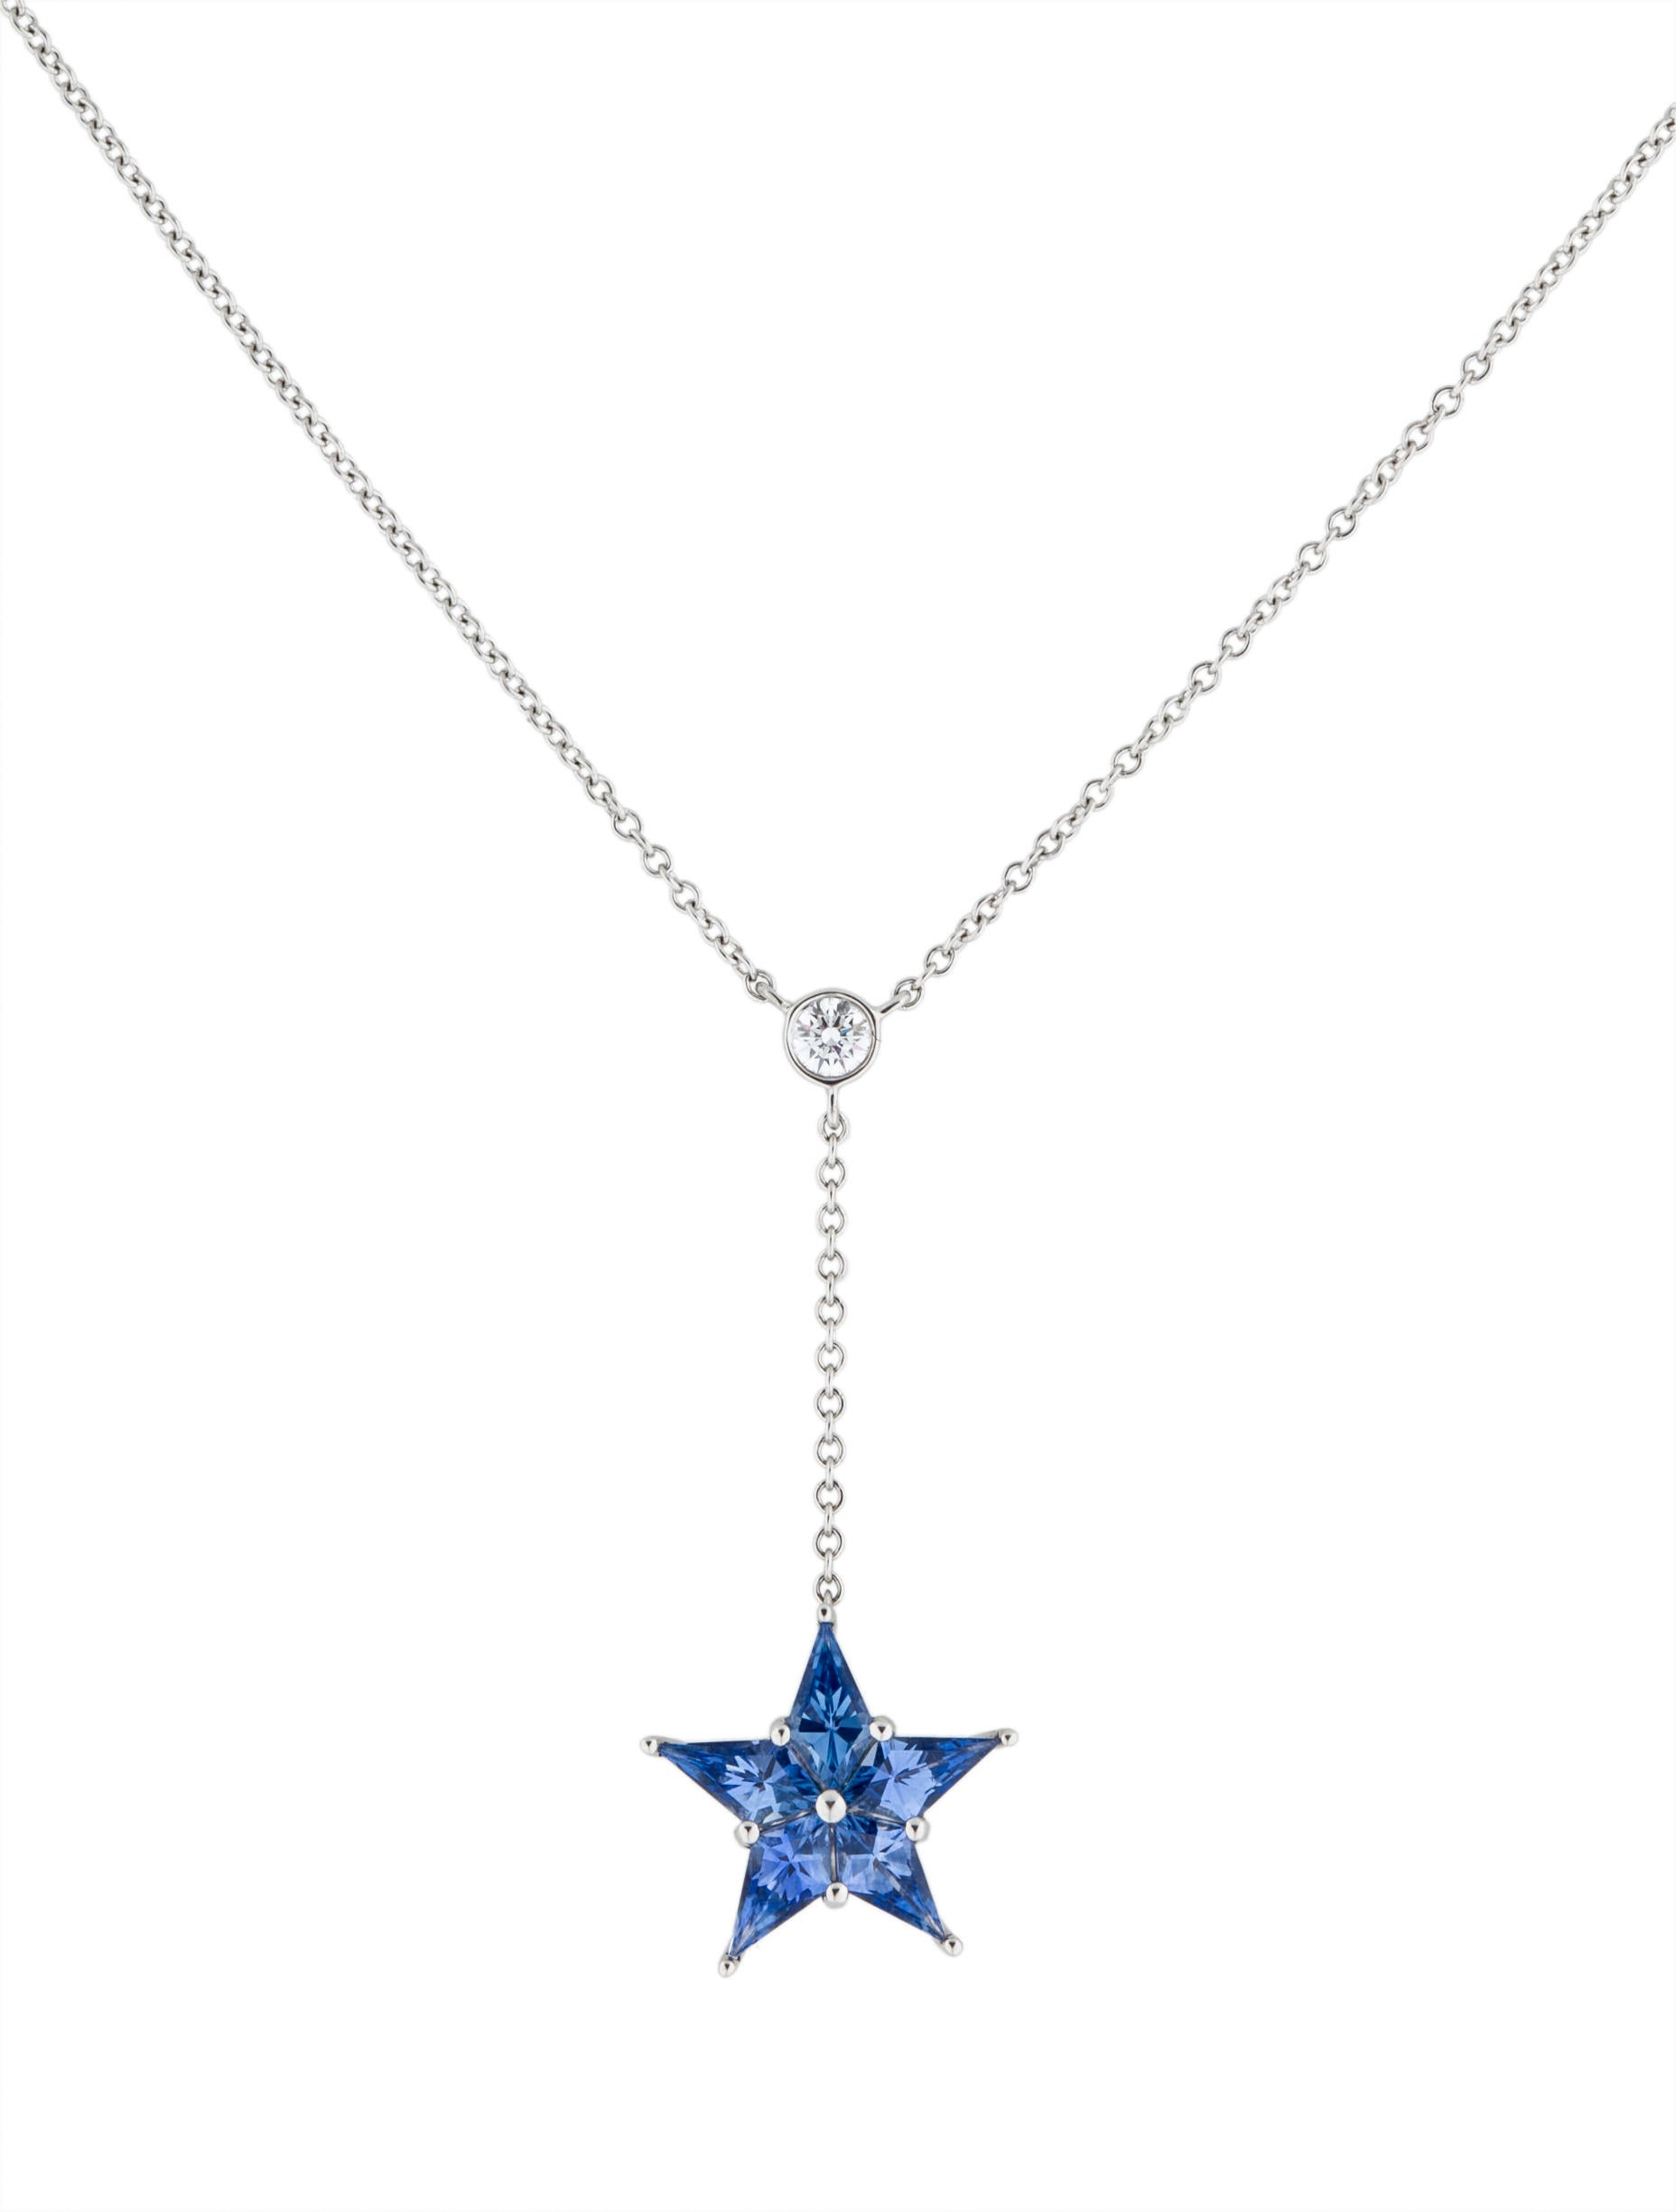 Tiffany co sapphire star pendant necklace necklaces sapphire star pendant necklace aloadofball Gallery